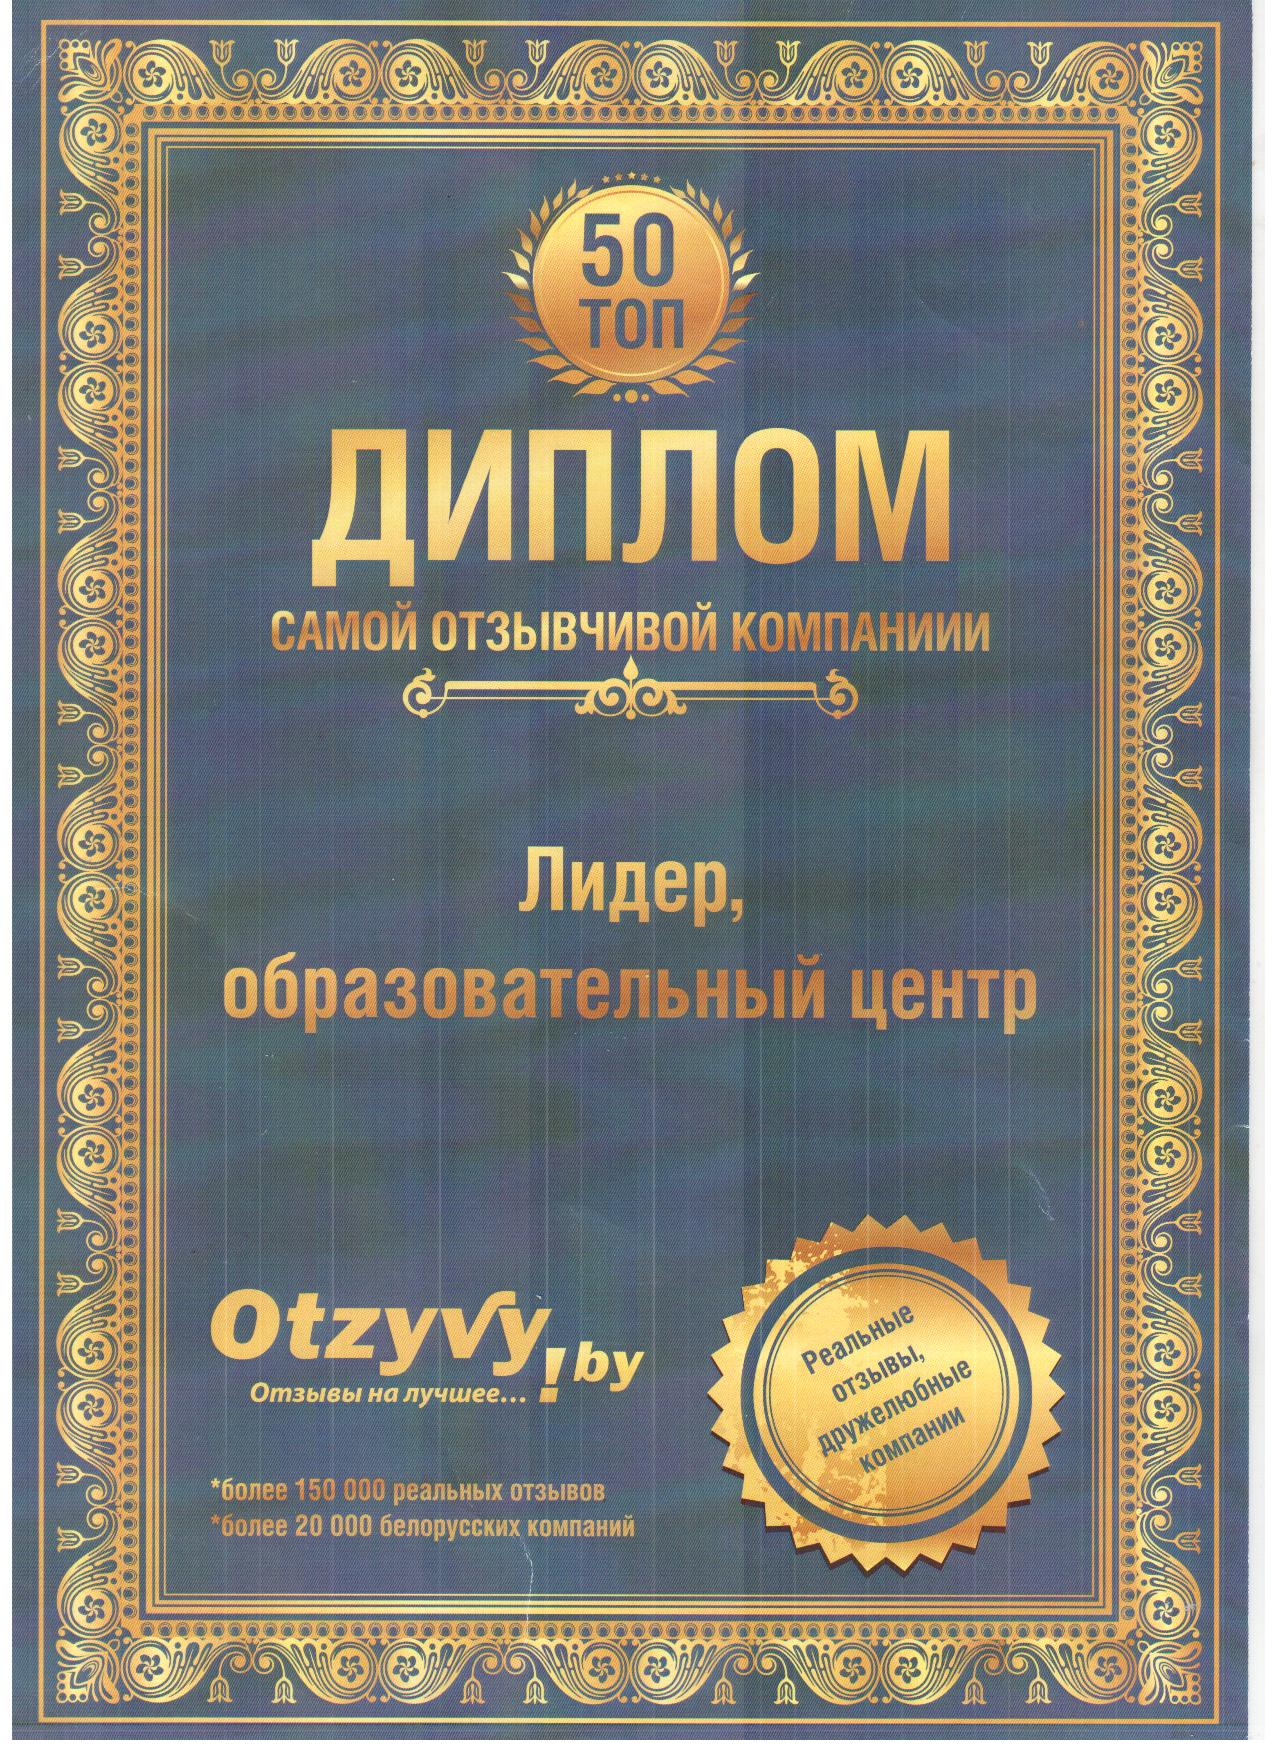 otzyvy.by 50 top (1)